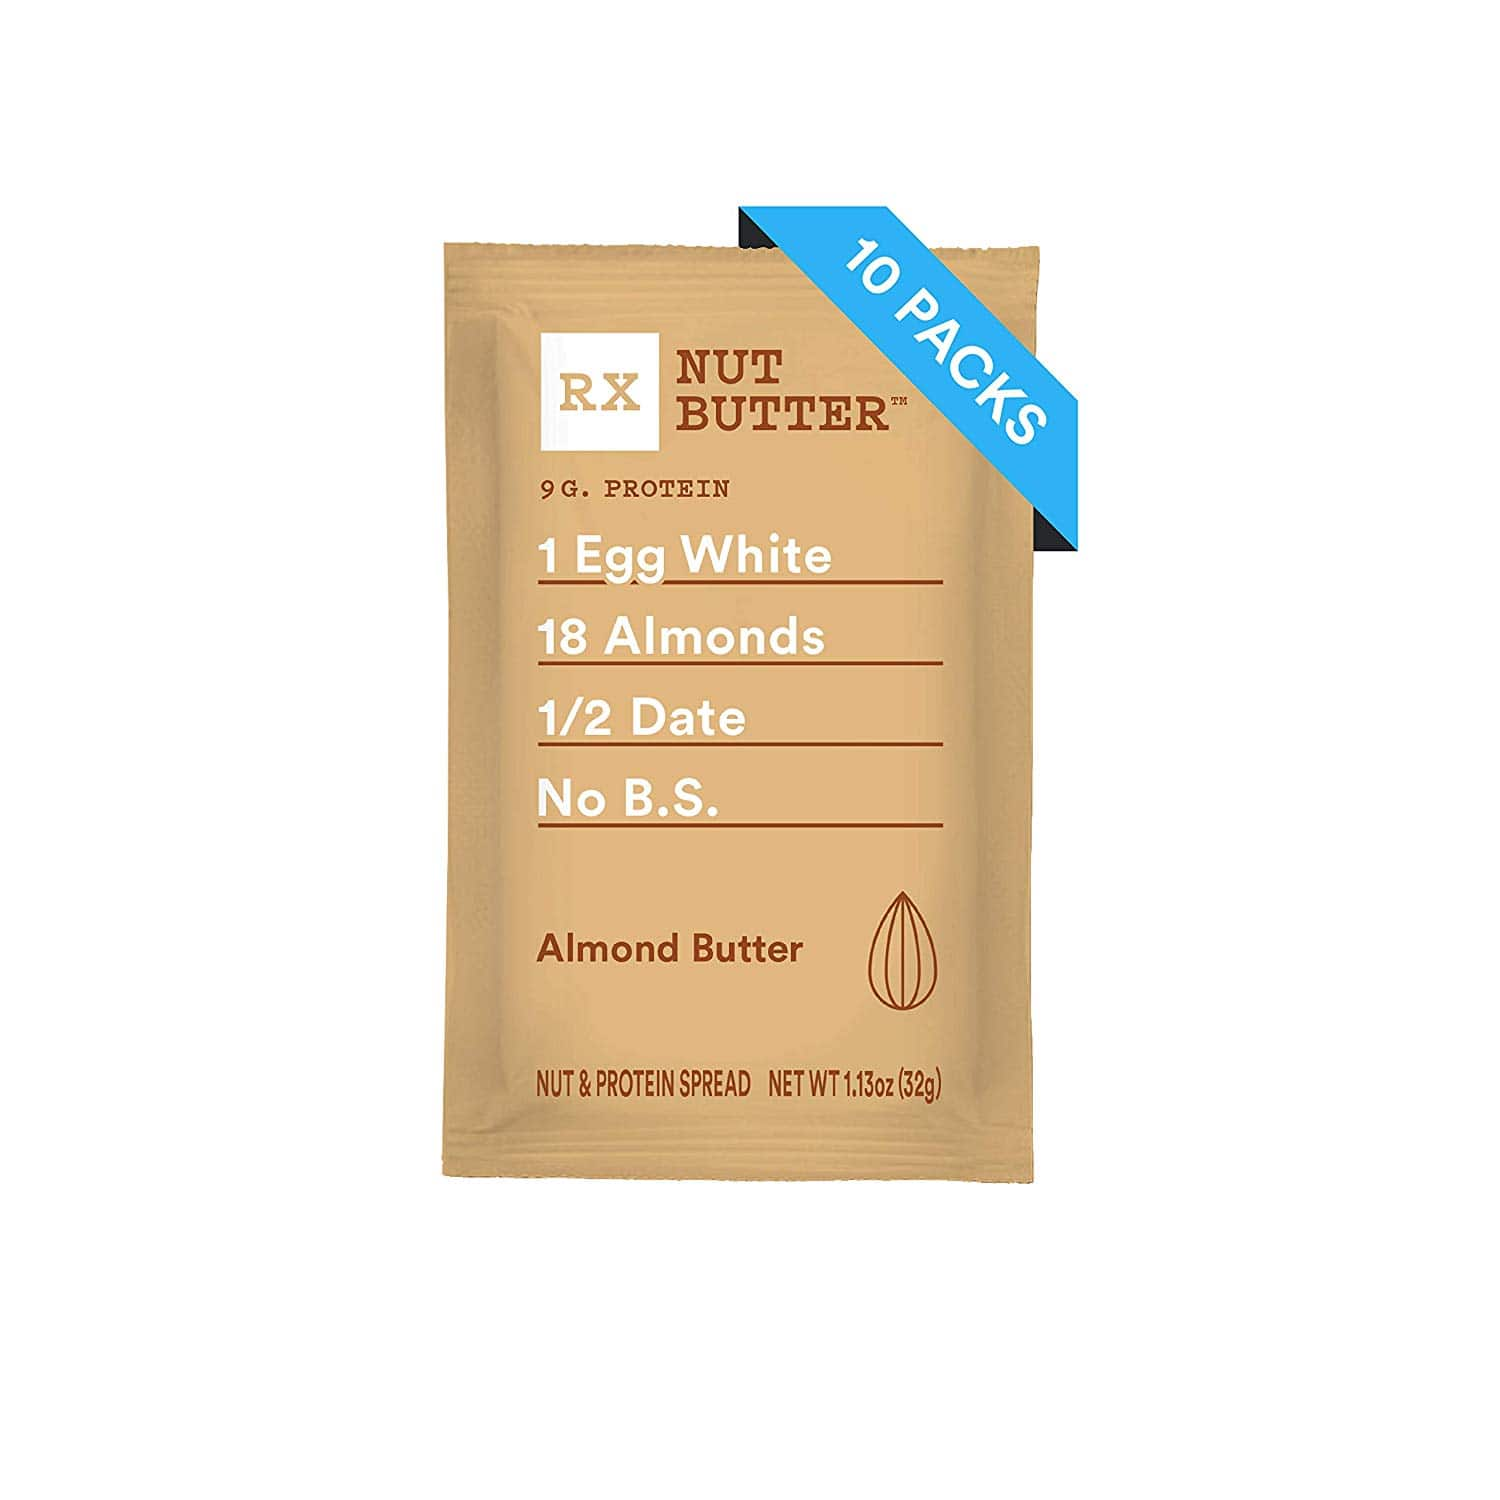 RXBAR, Peanut Butter, Low Carb, Keto Friendly, No Added Sugar, Gluten Free, 1.13 Ounce (Pack of 10), w/ S&S Amazon $11.21